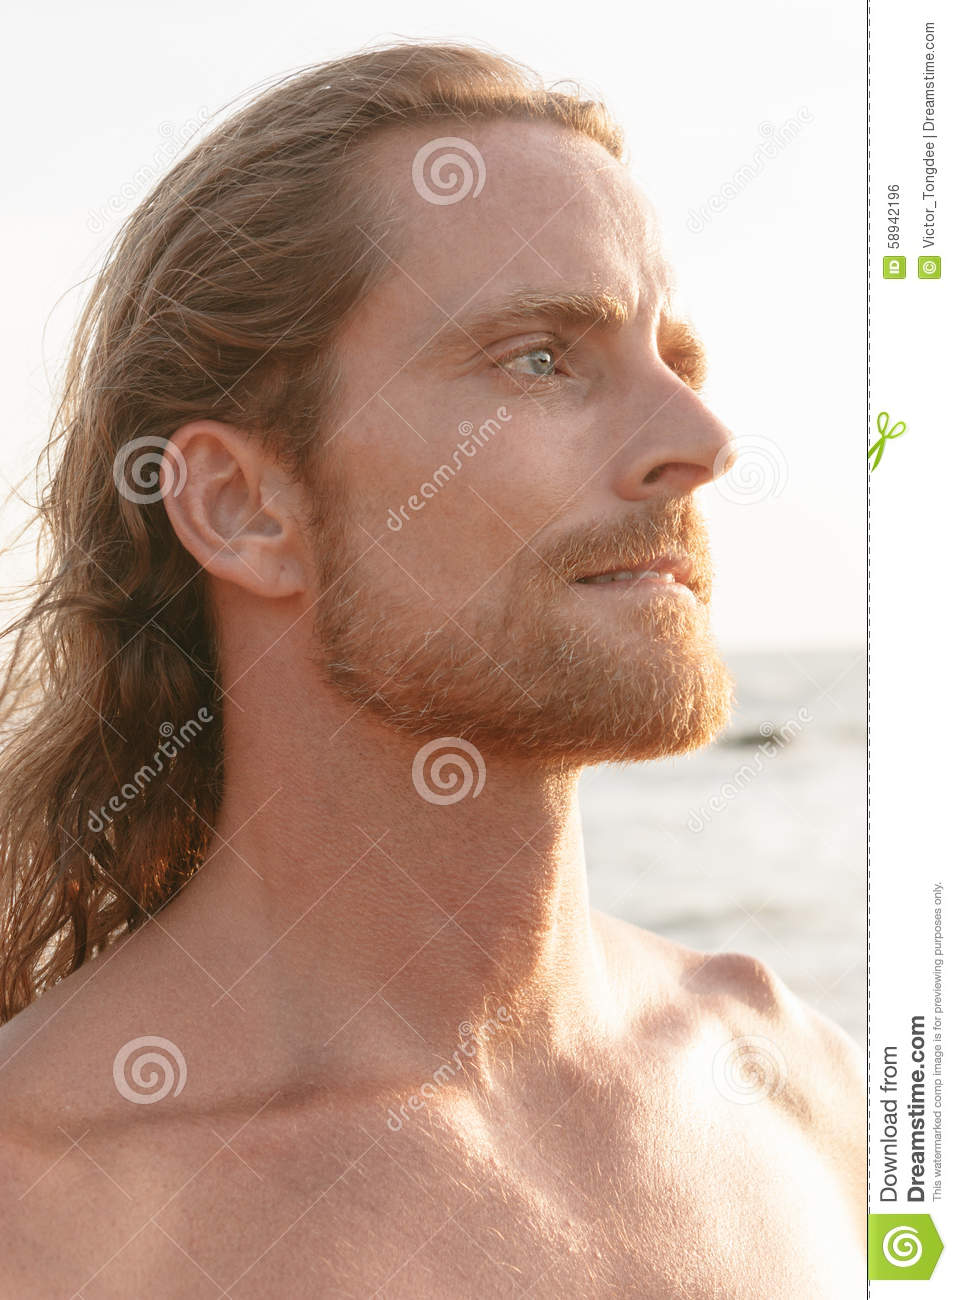 Handsome Bearded Man With Shoulder Length Hair Stock Photo Image Of Lifestyle Frown 58942196